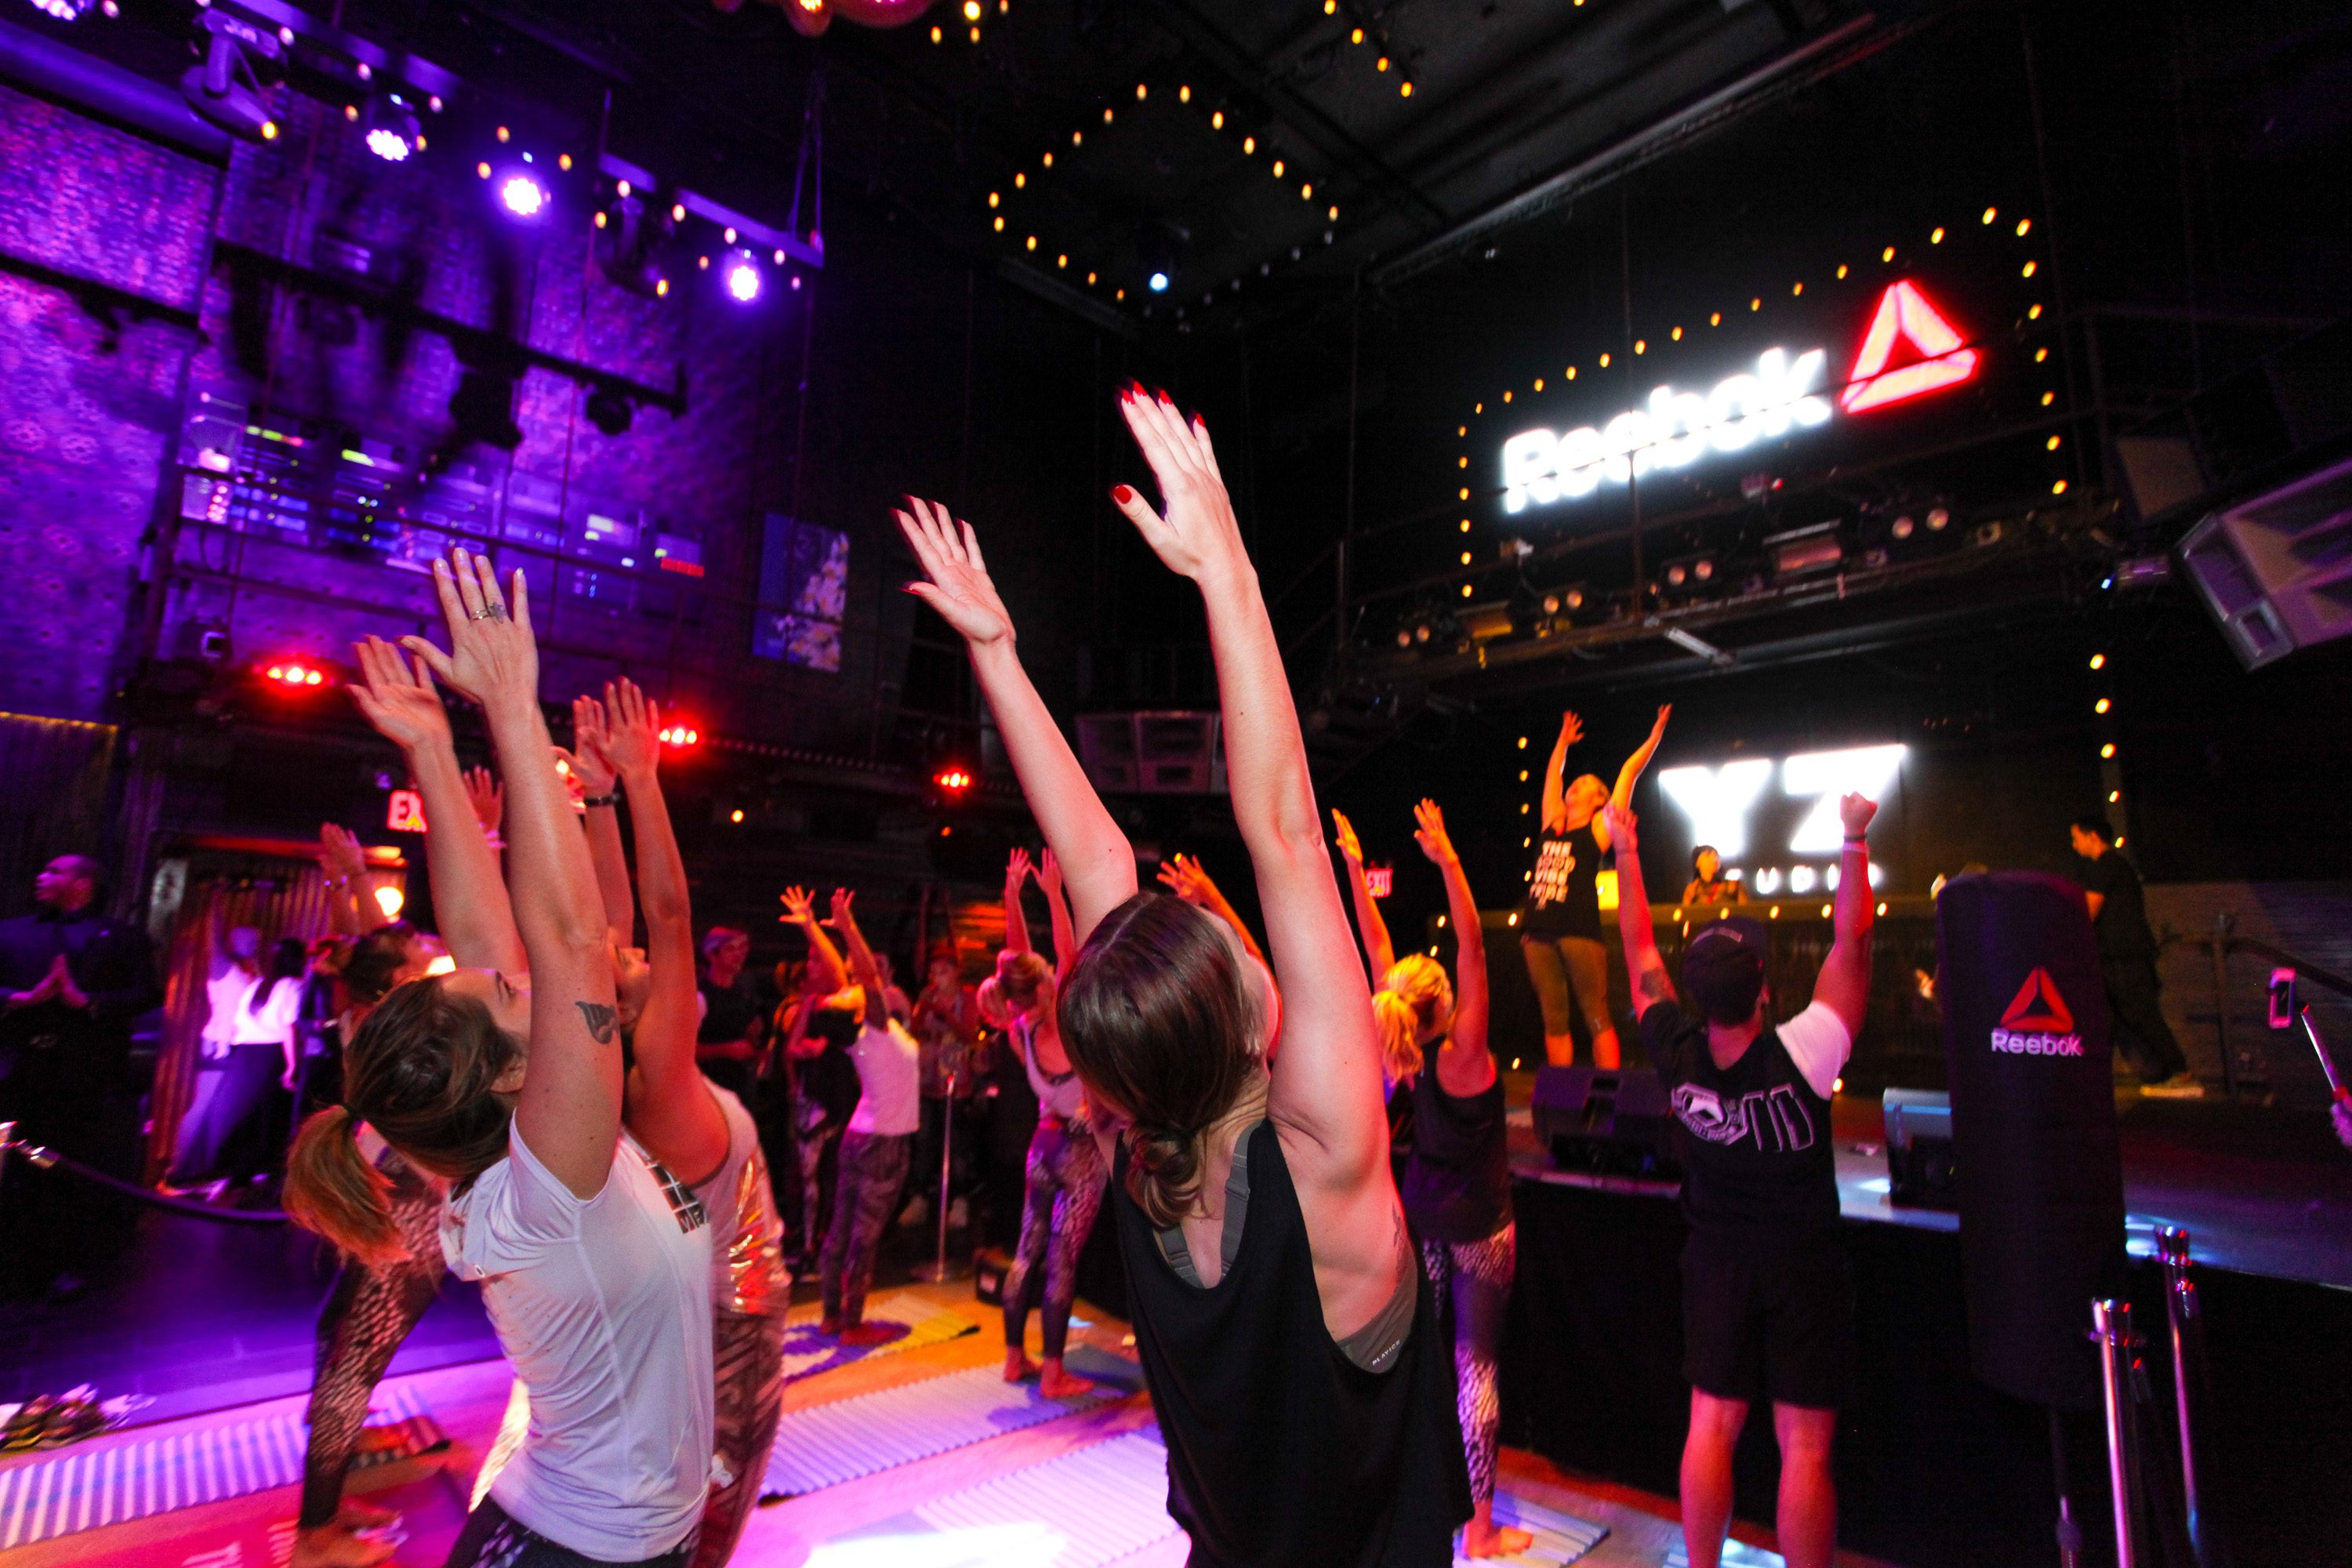 NEW YORK, NY - SEPTEMBER 16: Guests participate in the Y7 Class at Marquee on September 16, 2015 in New York City. (Photo by Donald Bowers/Getty Images for Reebok)